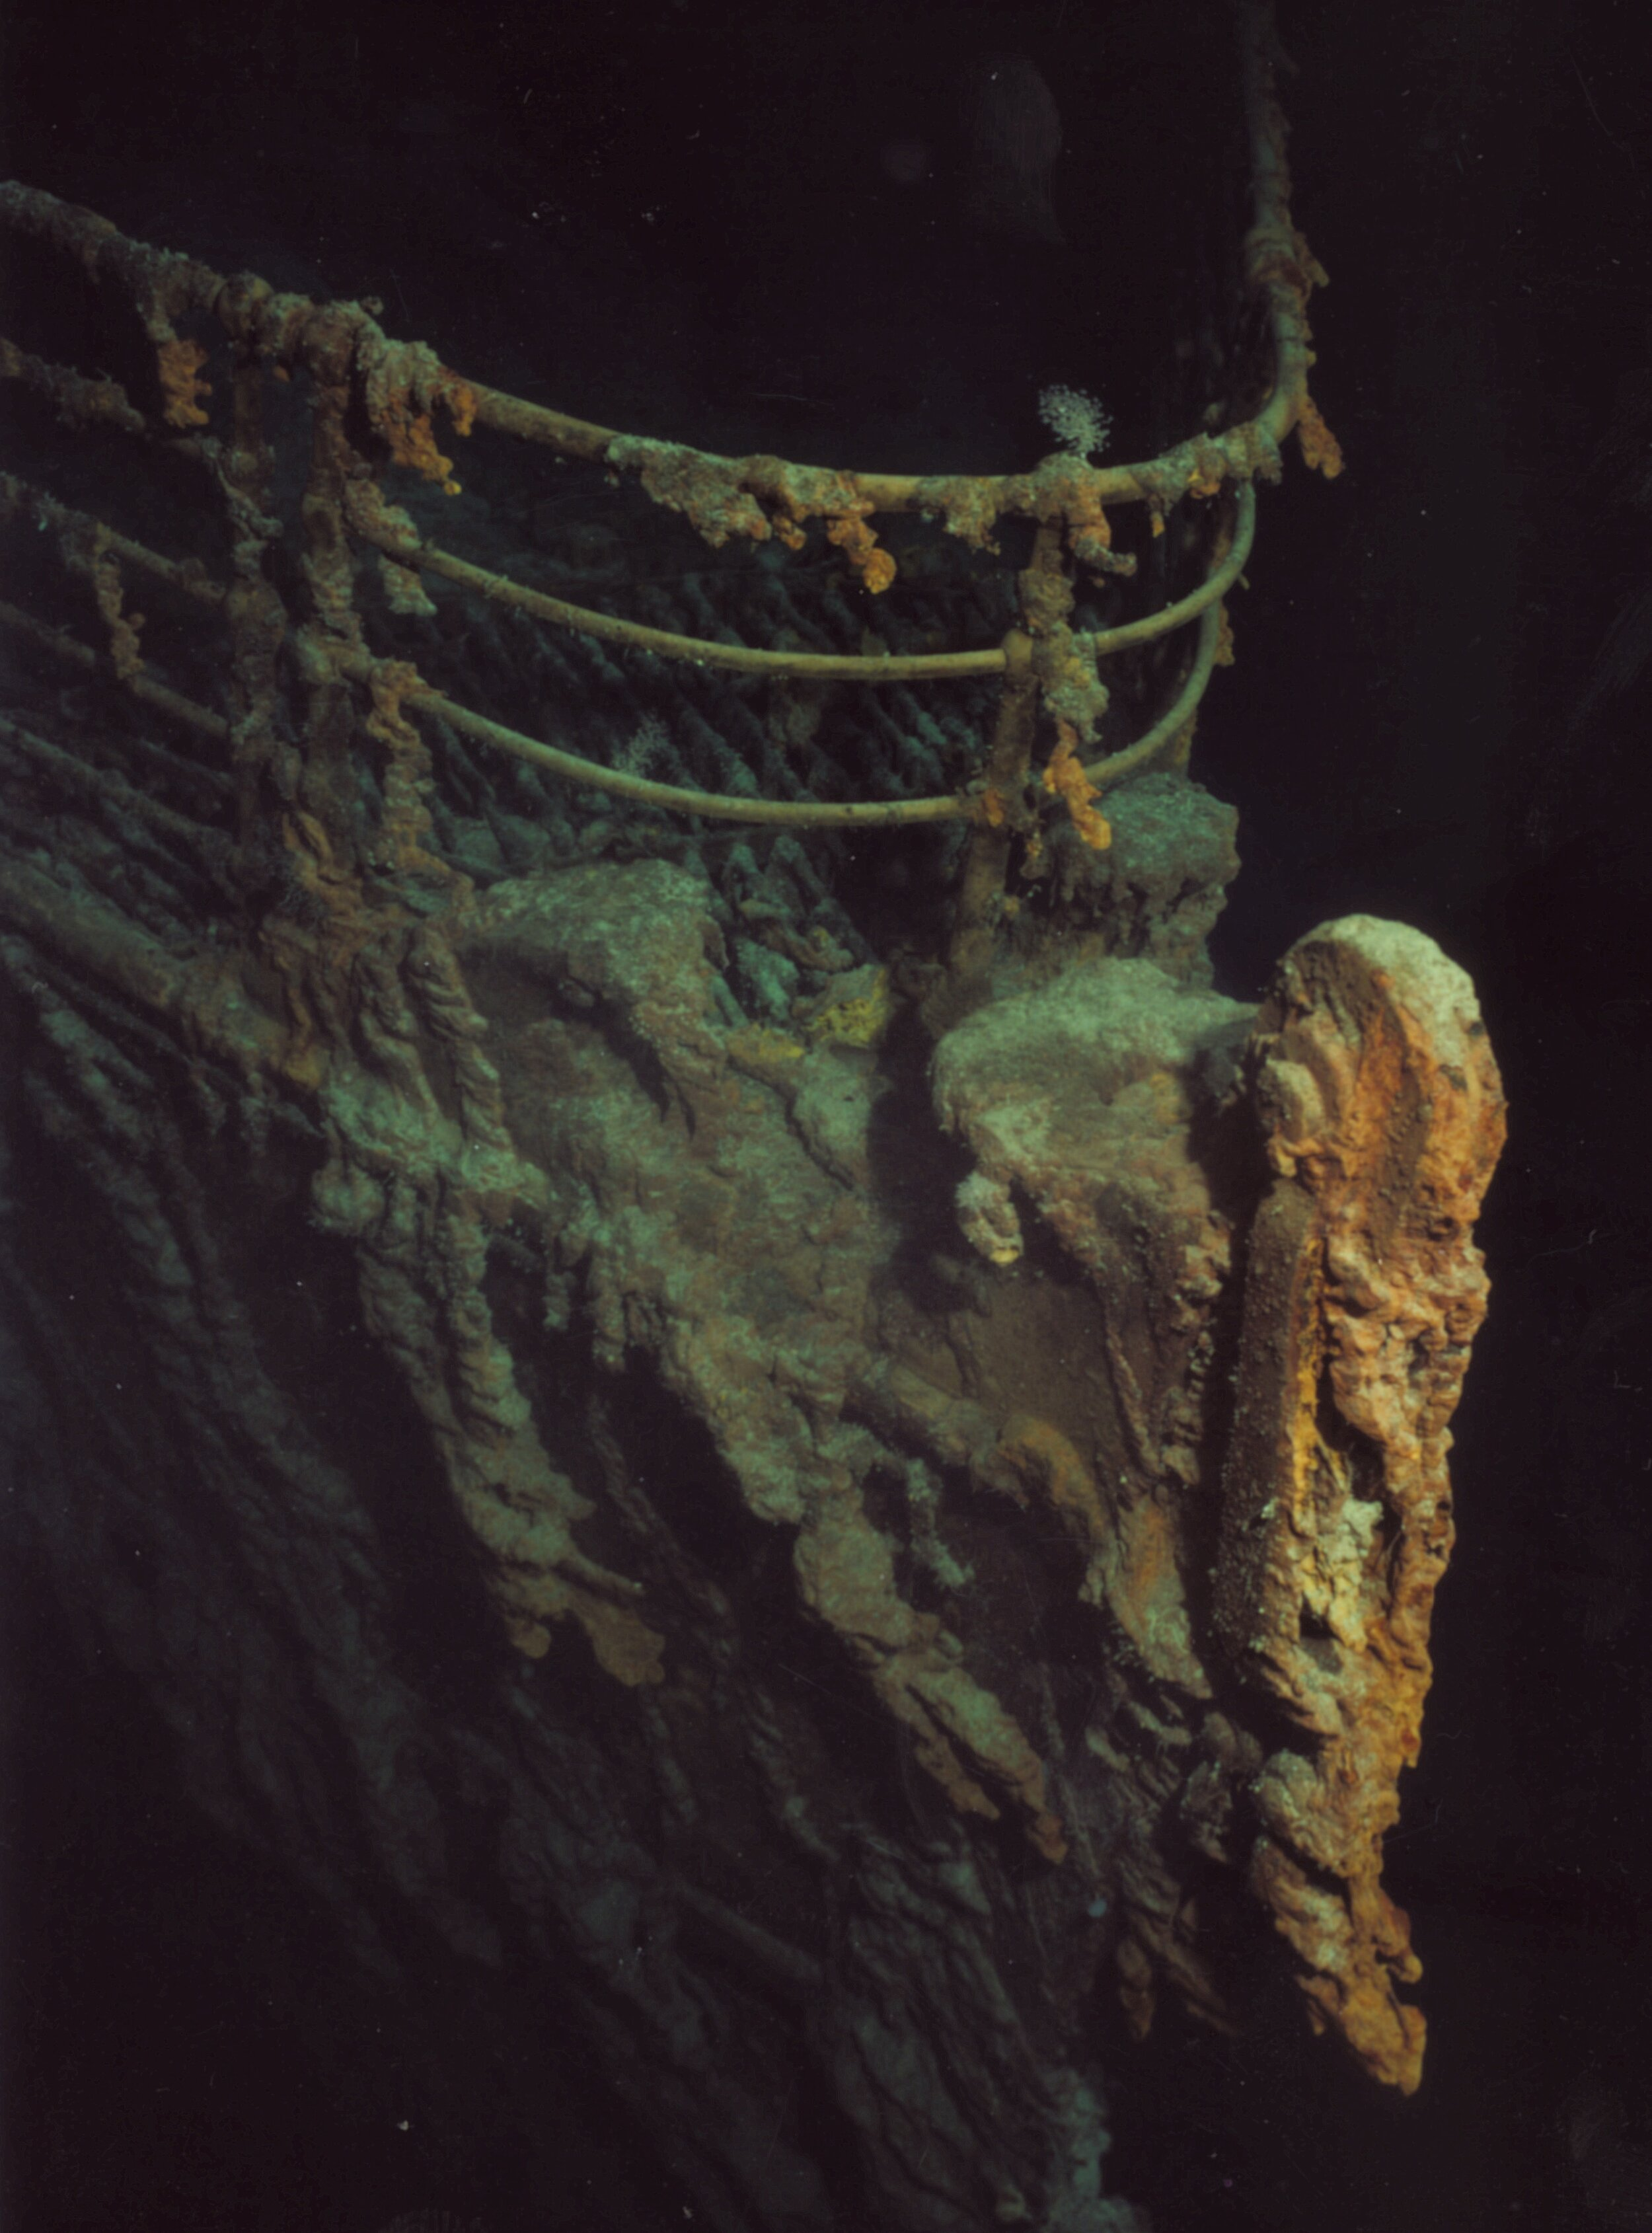 Image of the Titanic's wreck, from NOAA